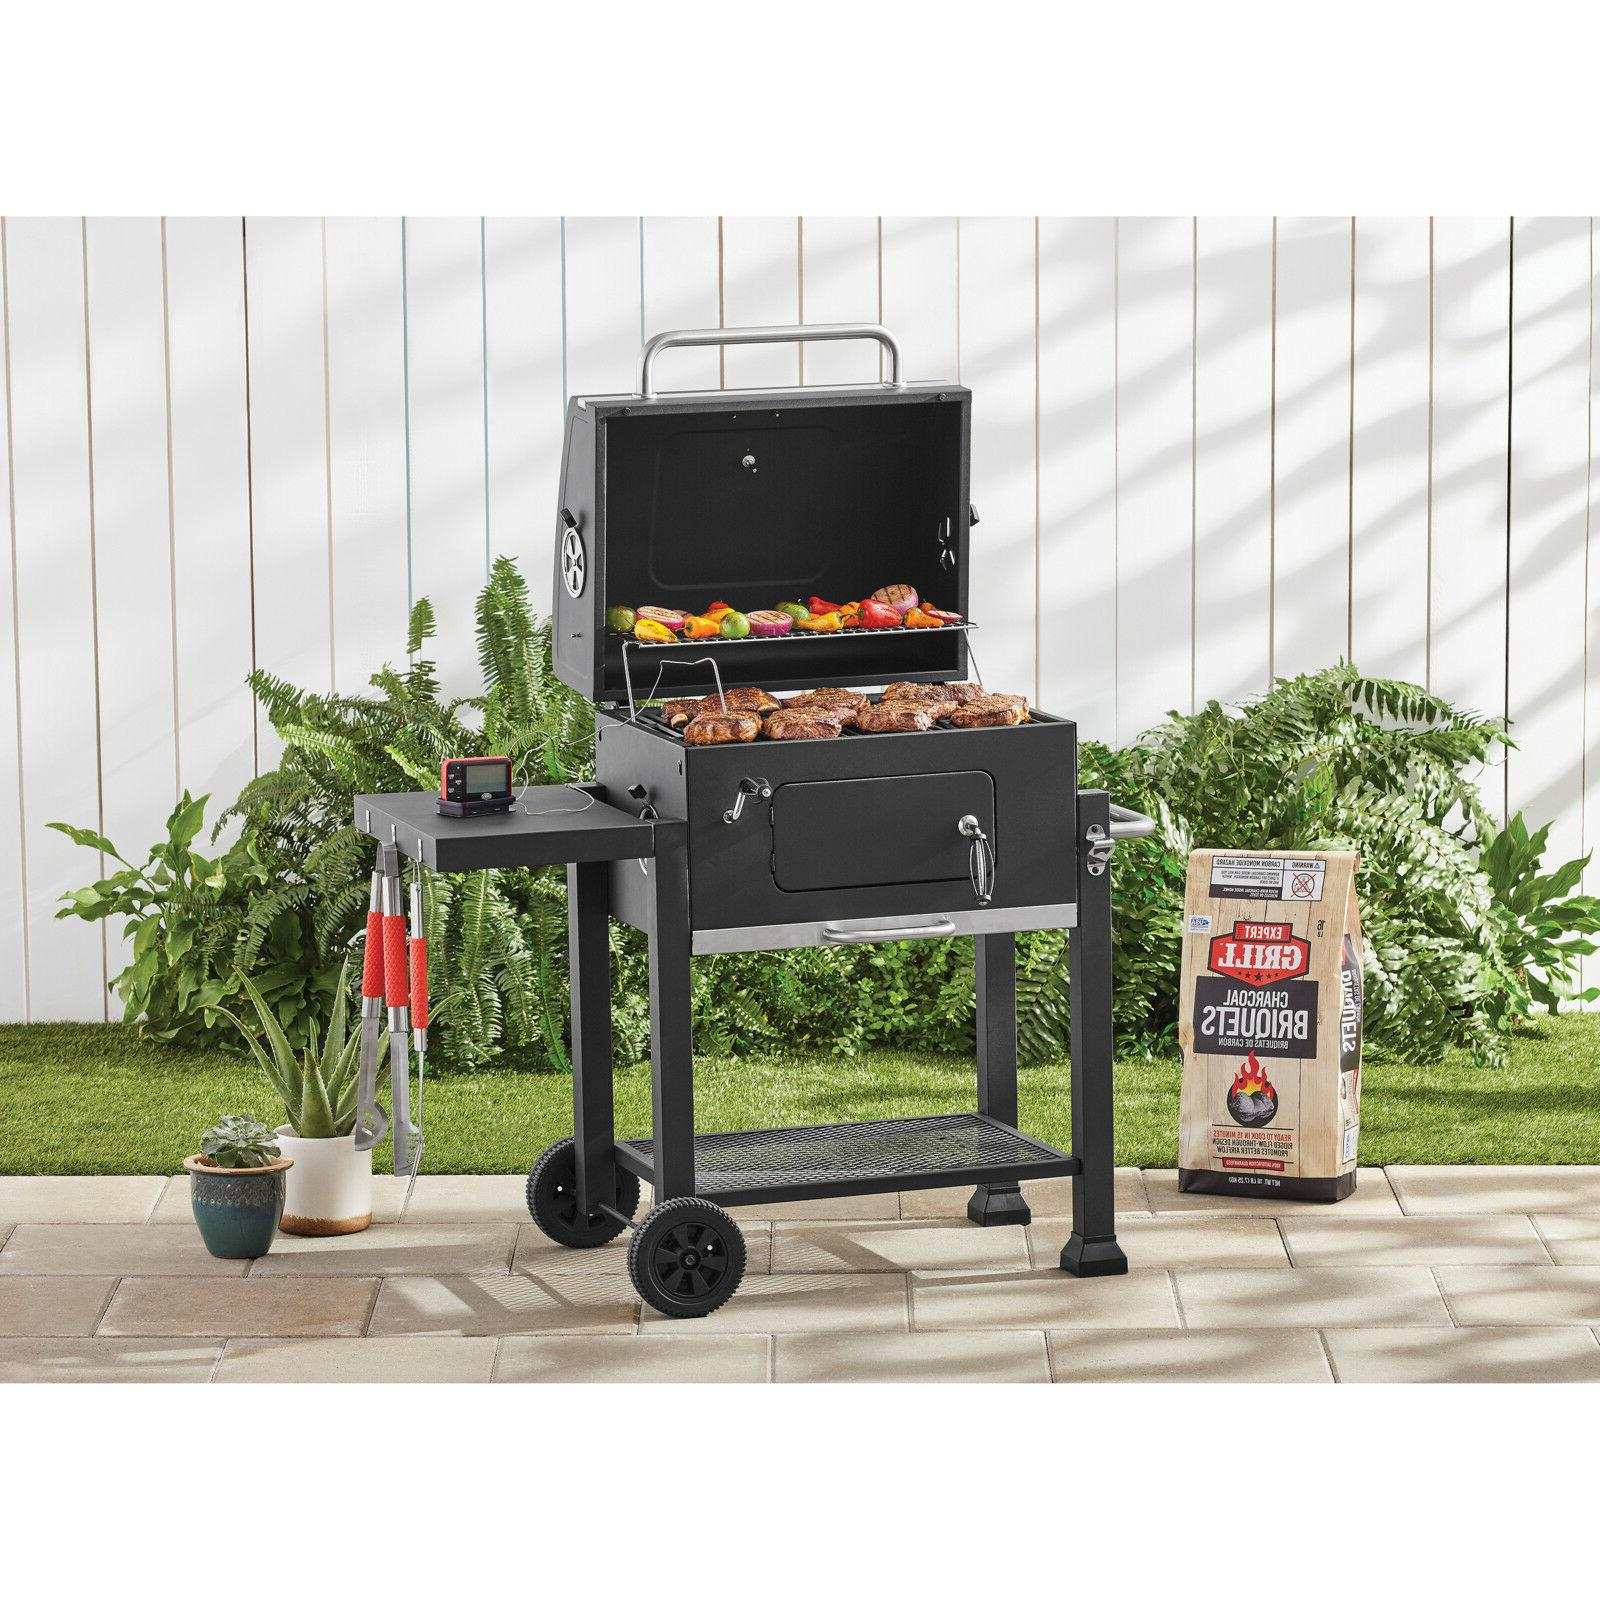 "CLEARANCE - BRAND Expert 24"" Grill SHIPPING!!"